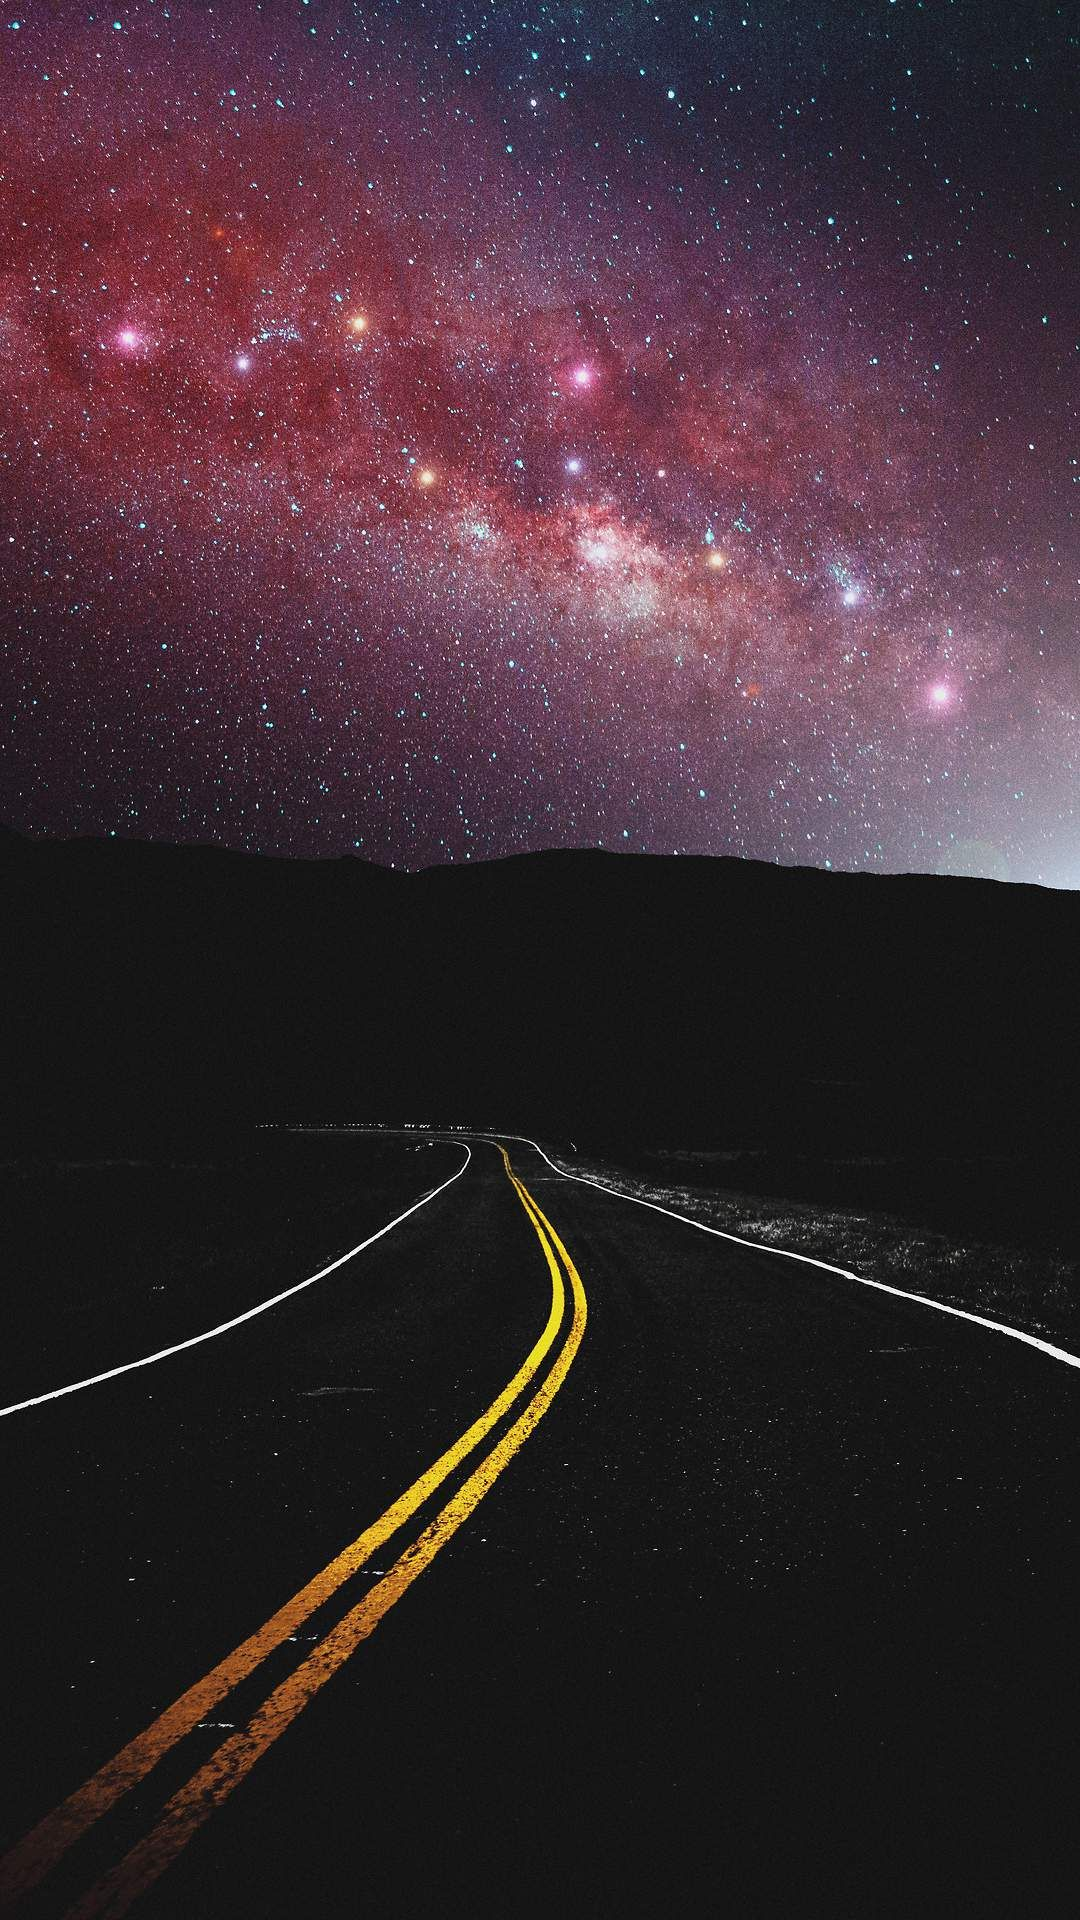 Milky Way View From Road Iphone Wallpaper In 2020 Nature Iphone Wallpaper Iphone Wallpaper Fall Iphone Wallpaper Images